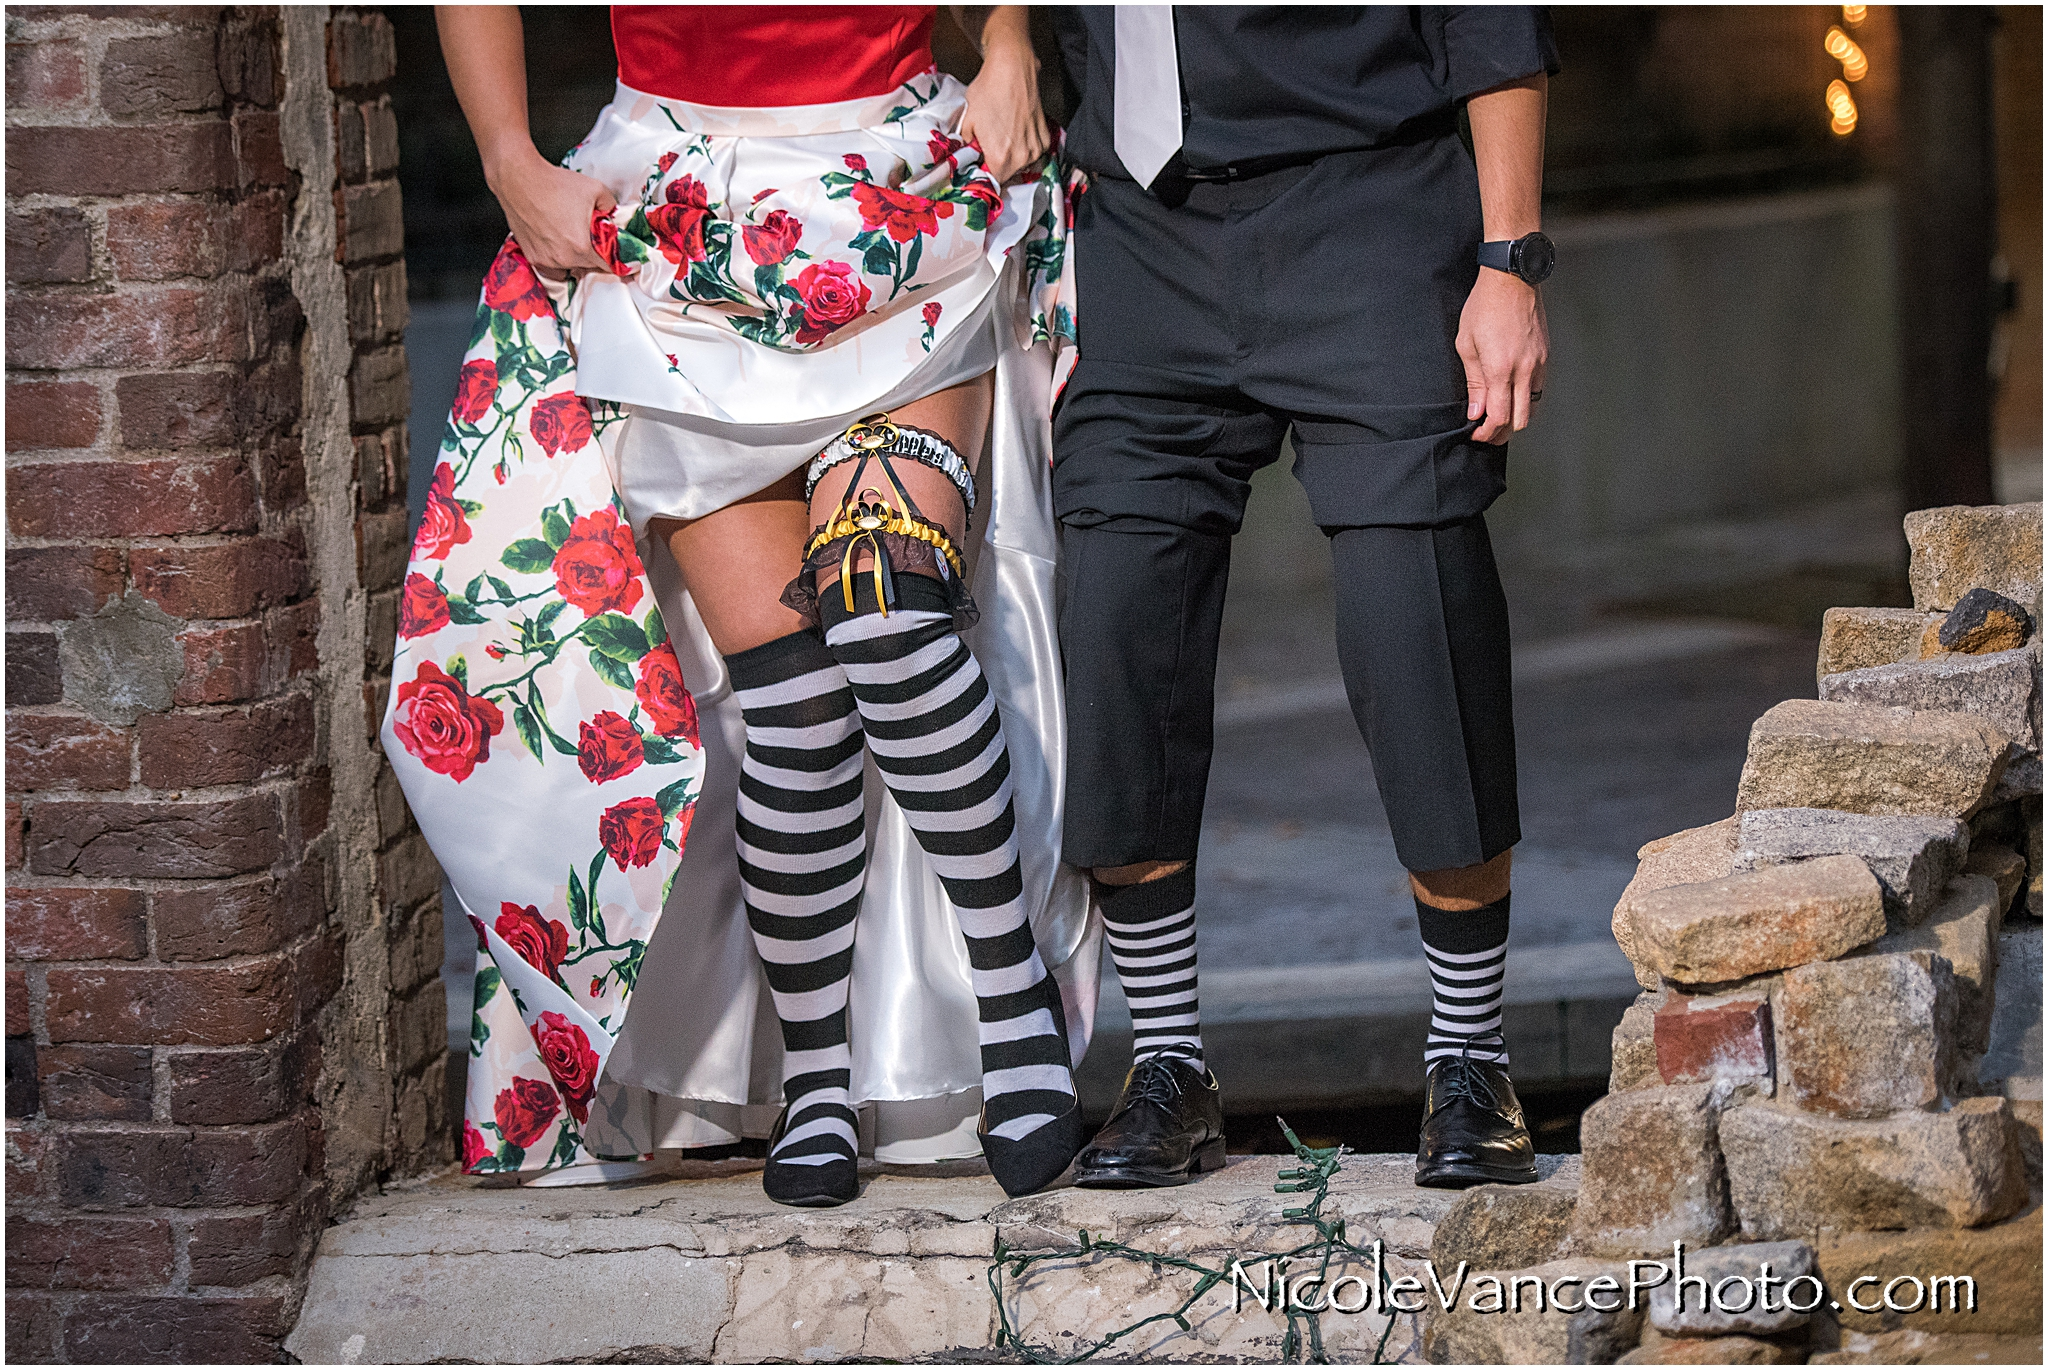 Cool halloween themed socks worn by the bride and groom.